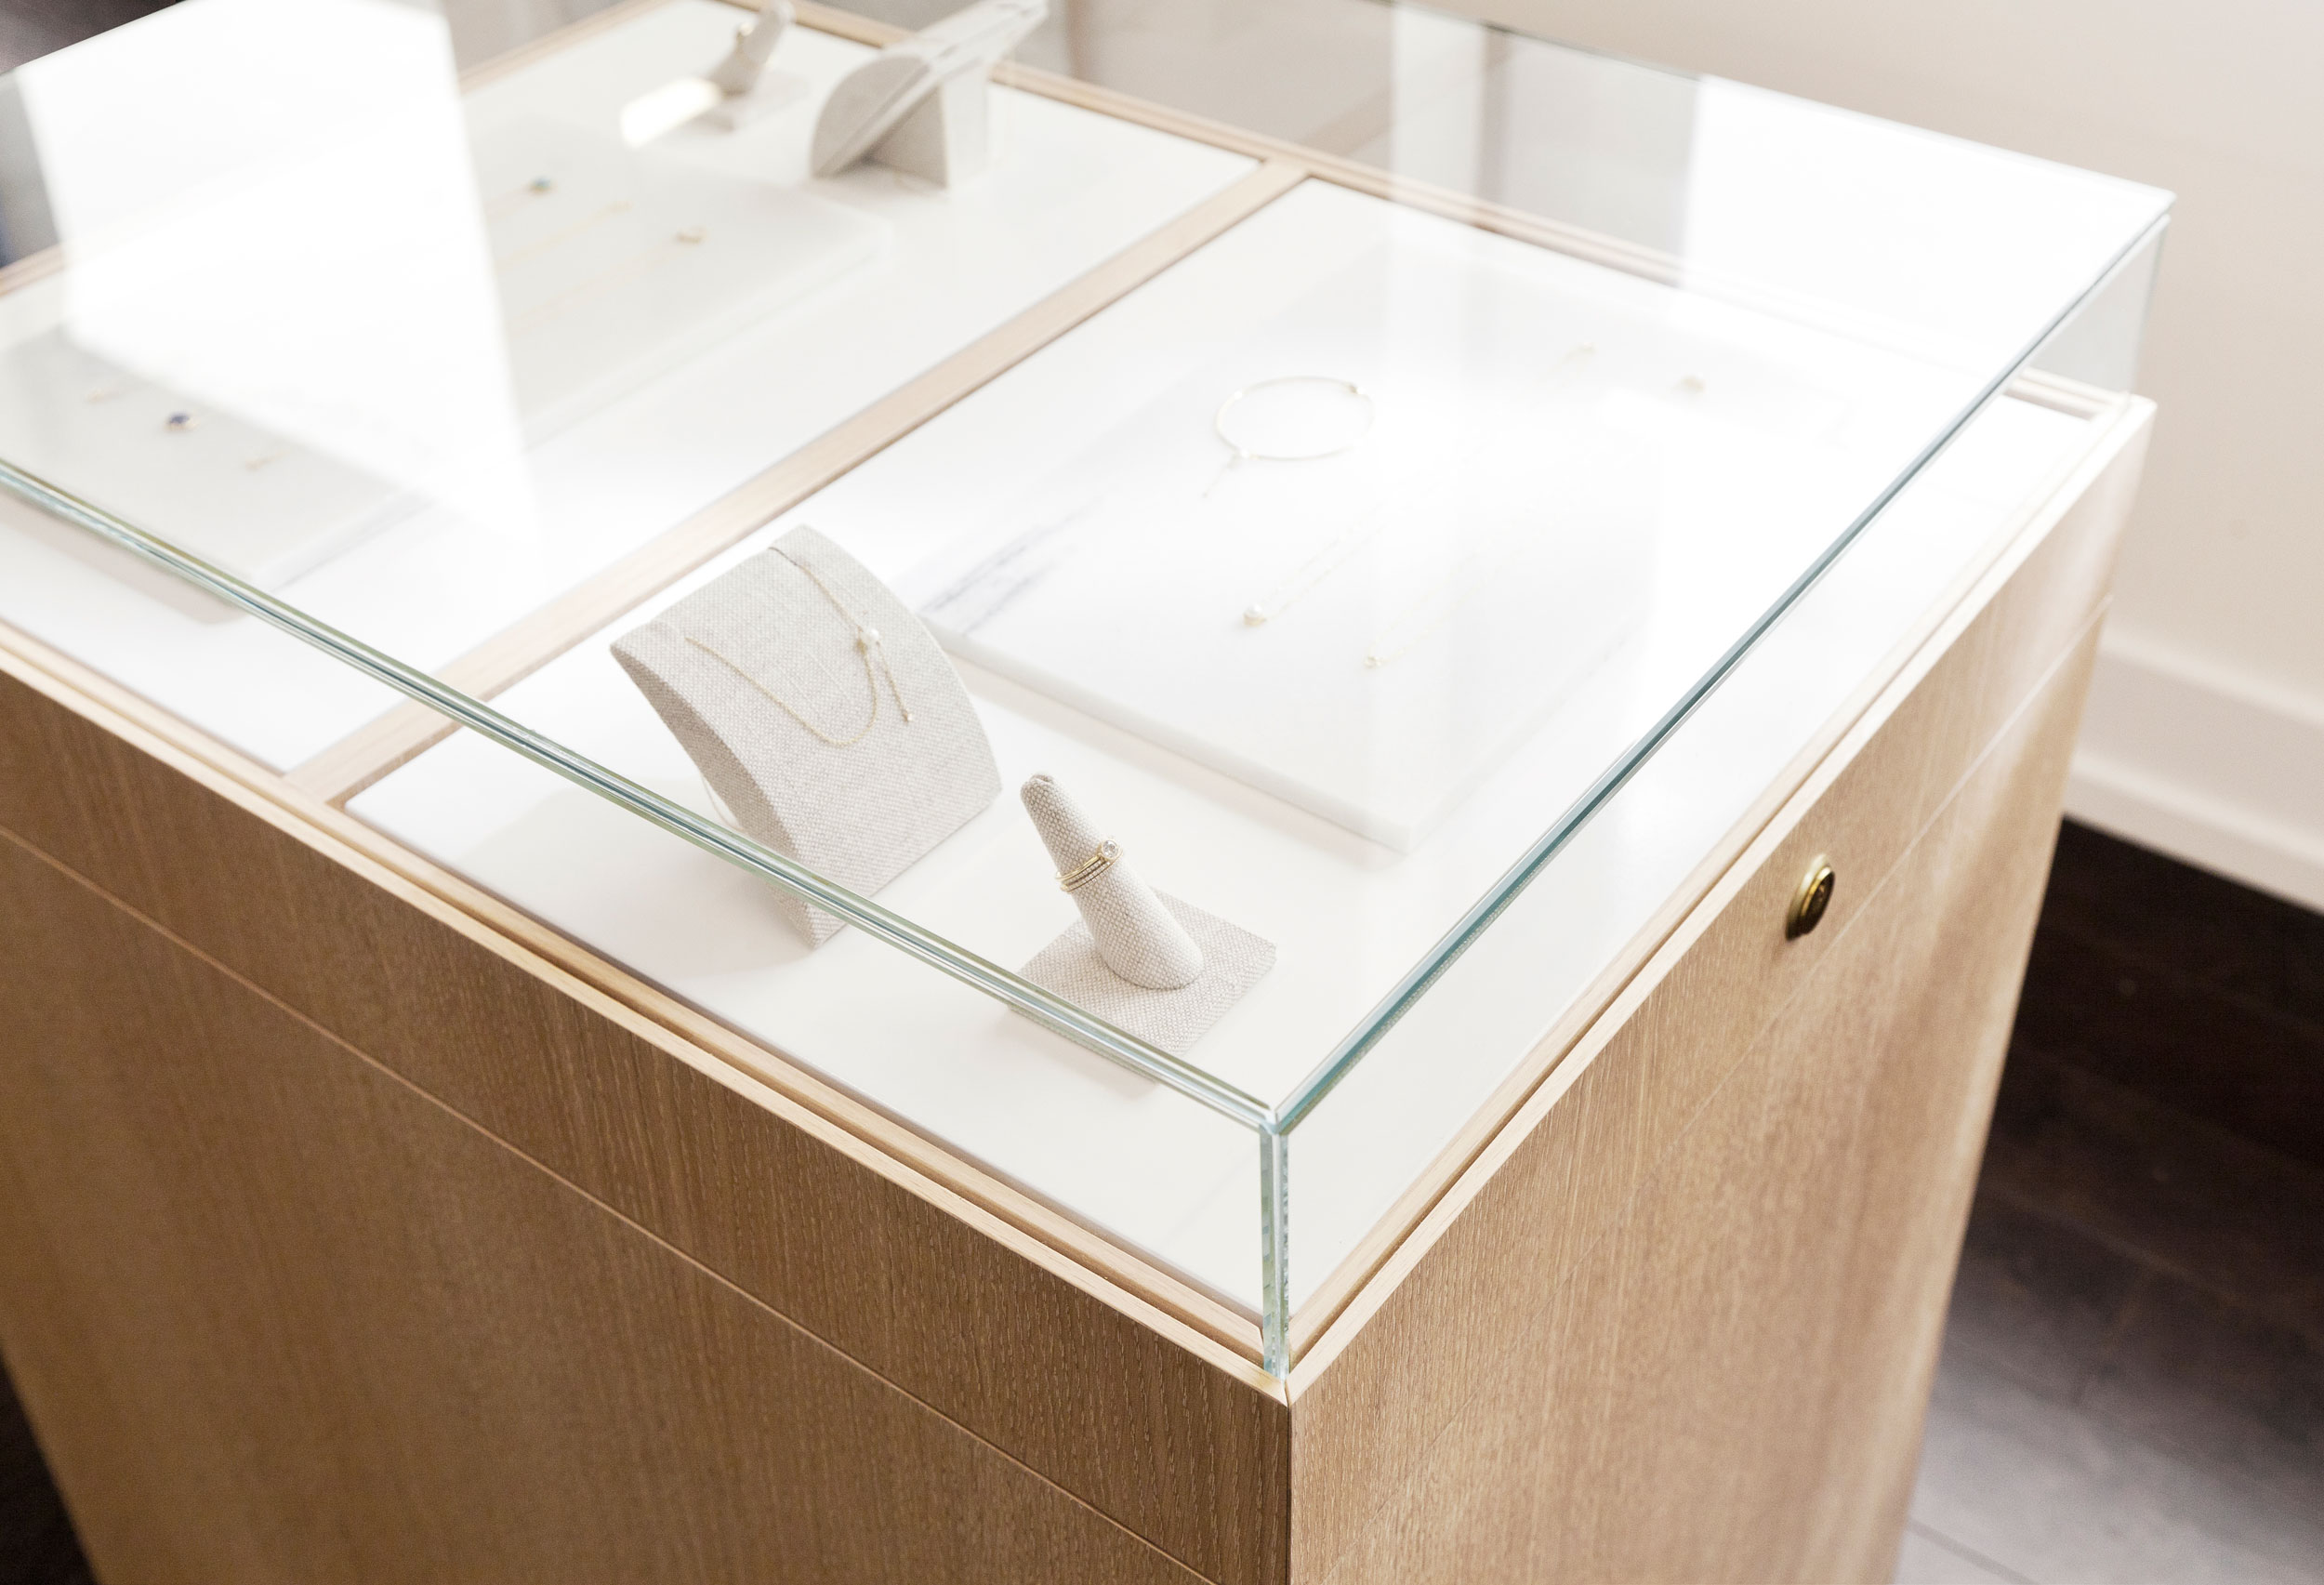 We styled the interiors of the jewelry cases as well, employing the use of traditional linen jewelry holders alongside textured marble off-cuts.